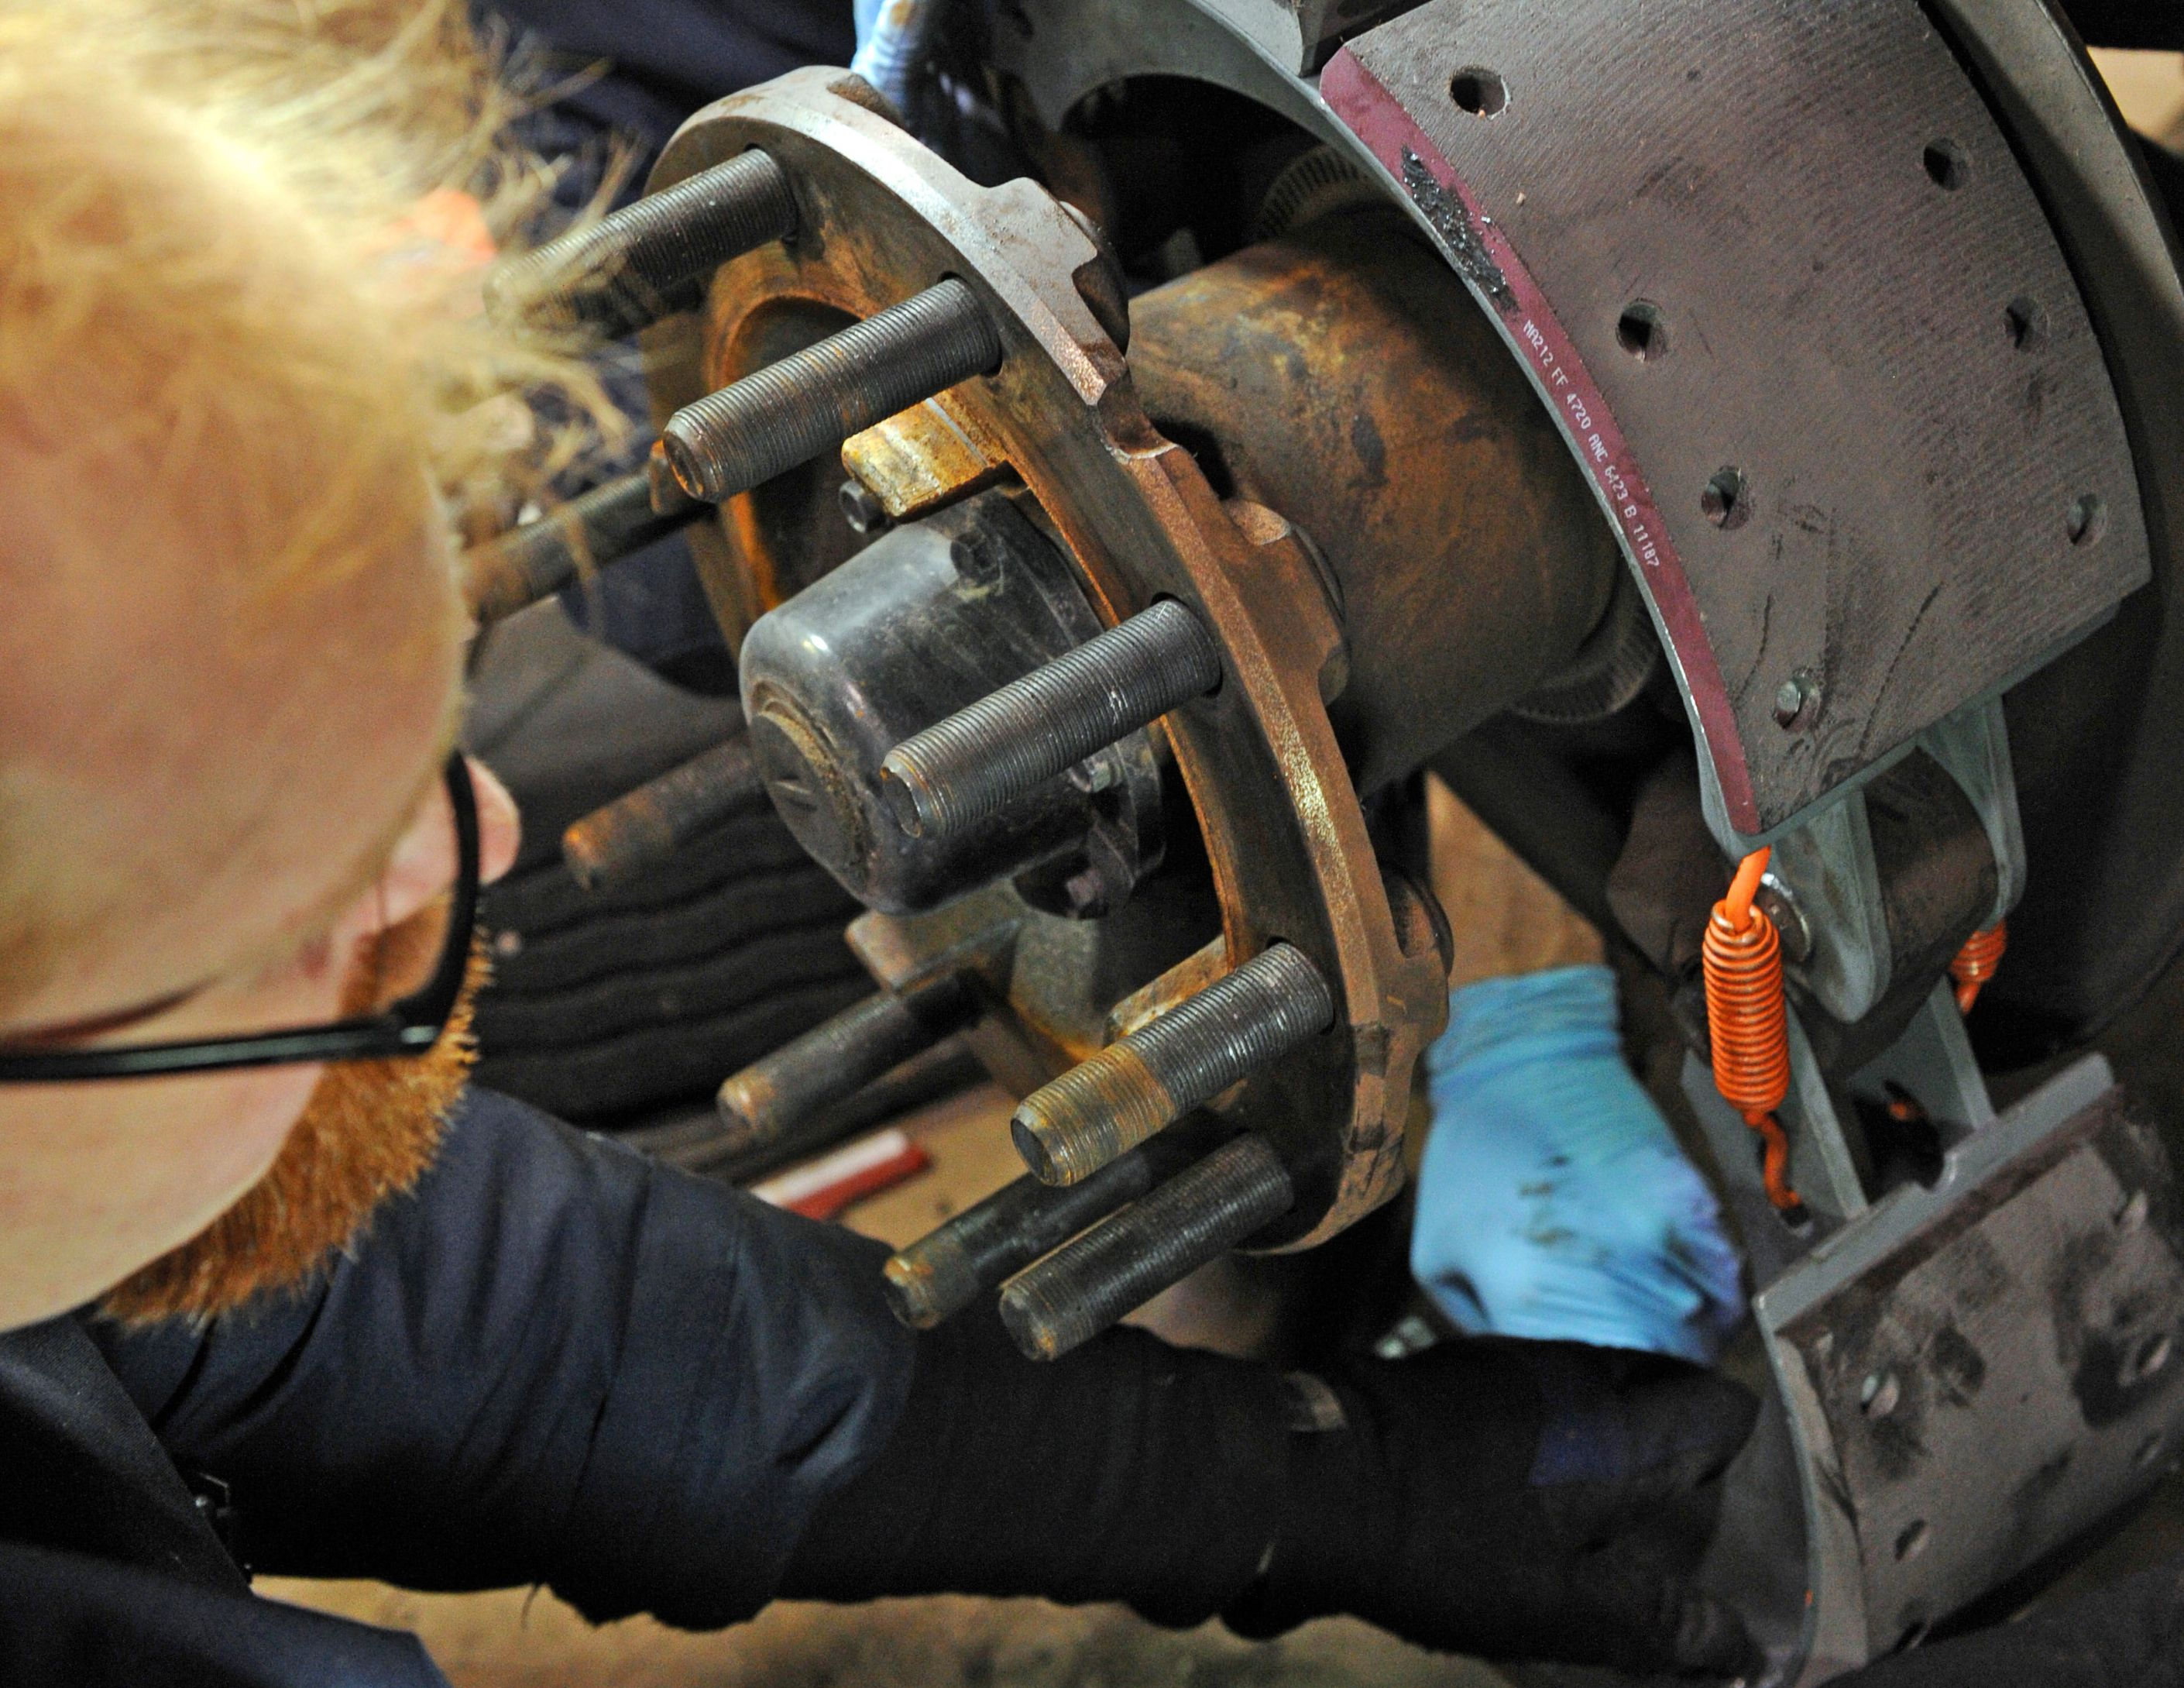 Bendix Offers Maintenance Pointers Ahead of CVSA Roadcheck